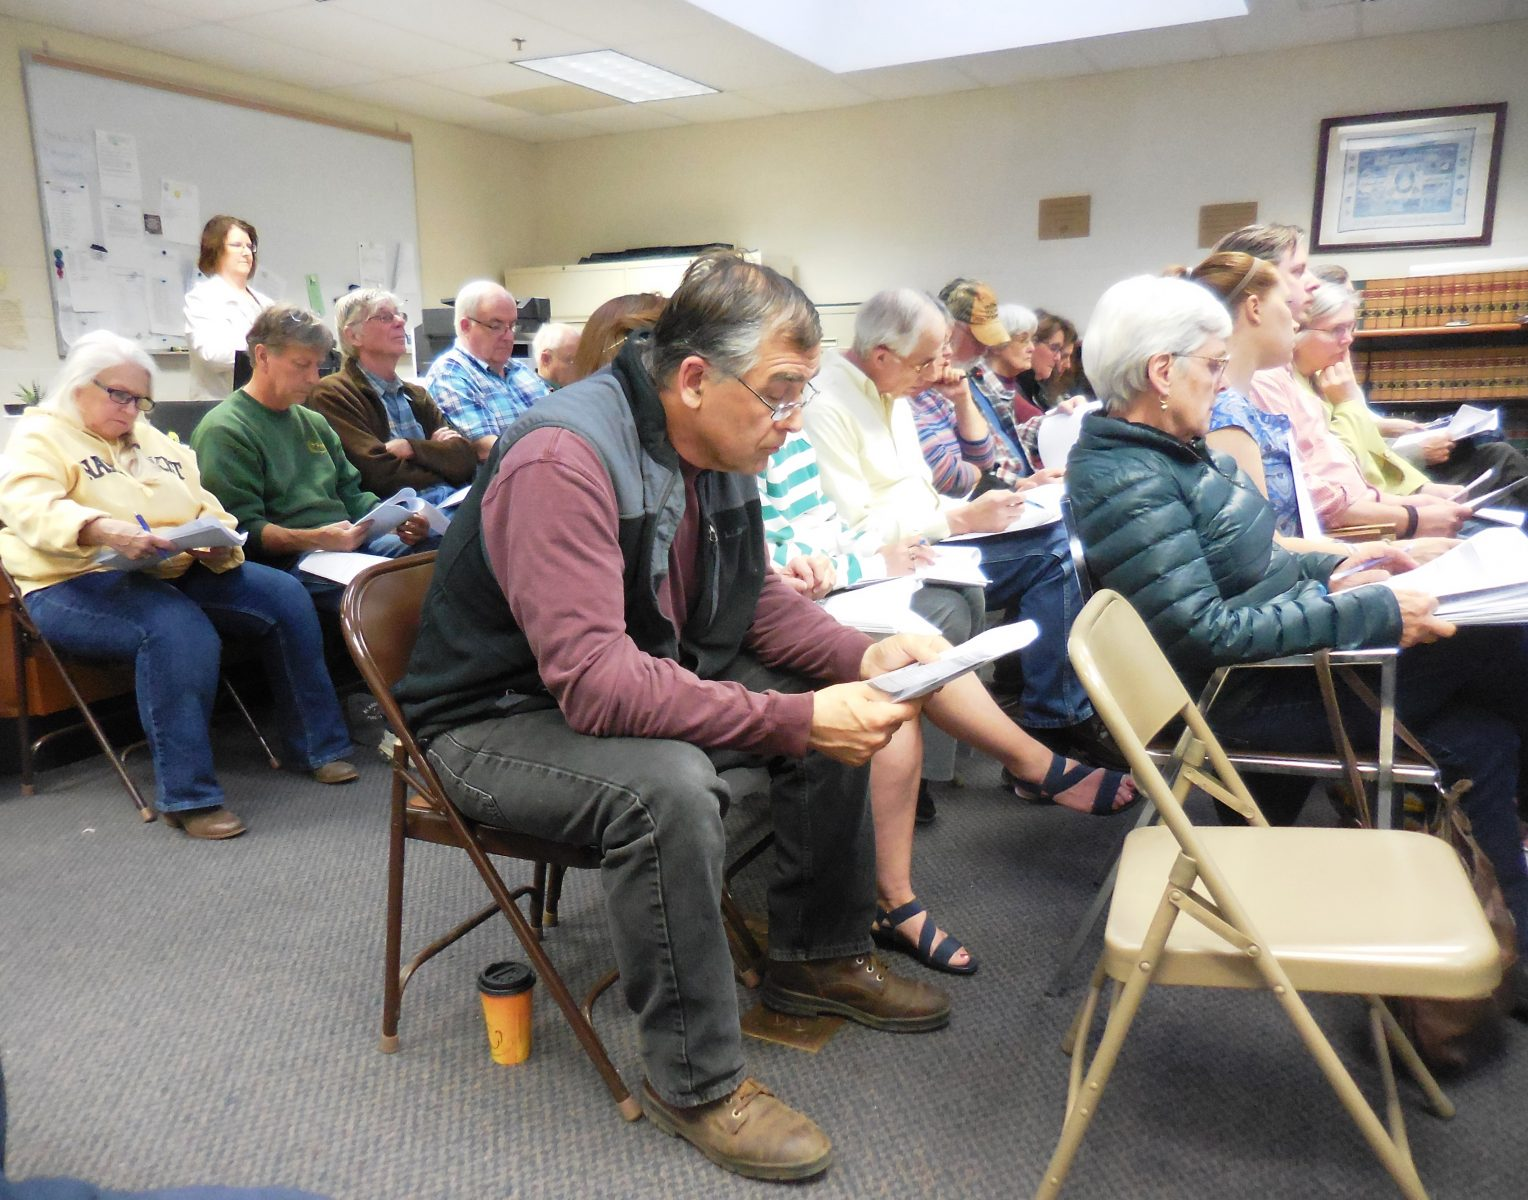 Blandford mini-town meeting uncovers conflicts